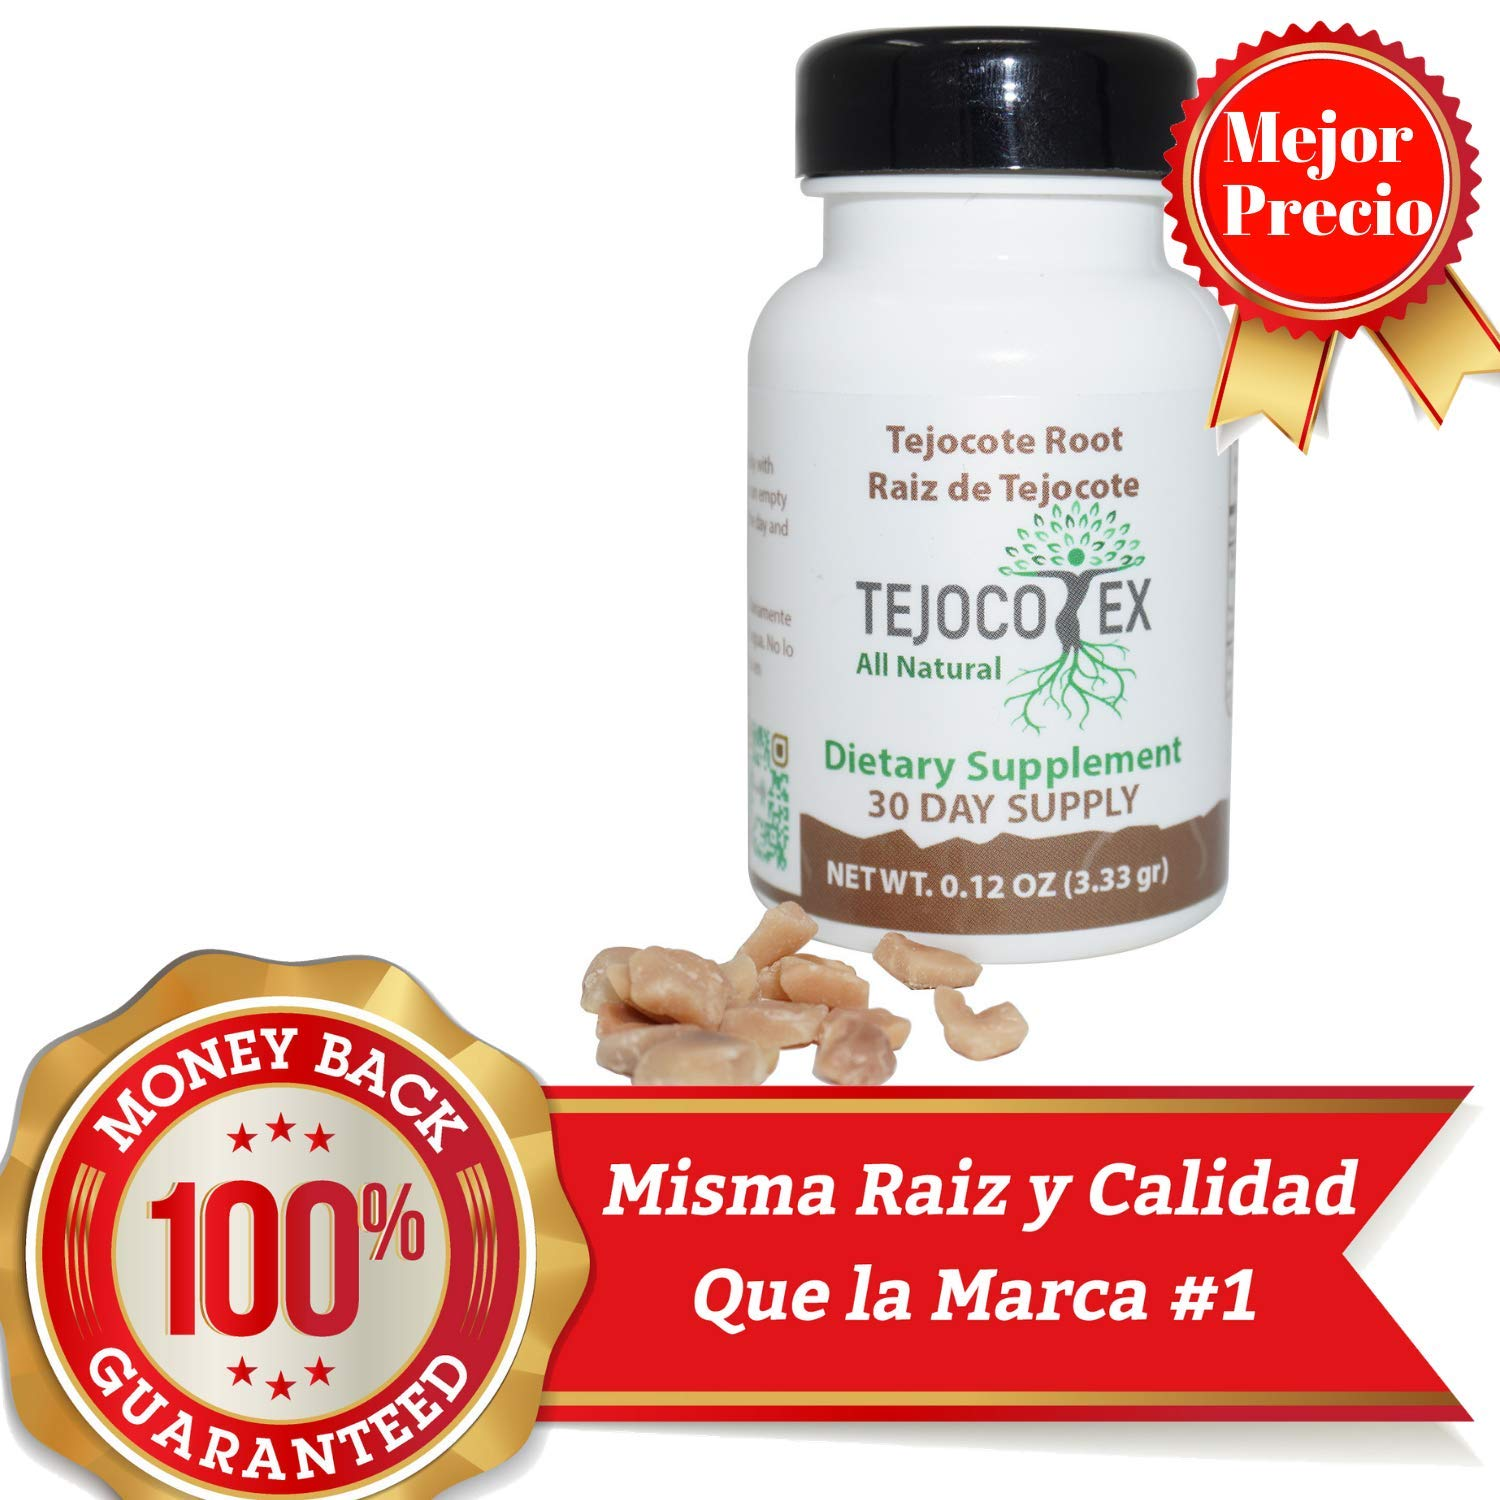 Amazon.com: Tejocotex Raiz de Tejocote Root Supplement 100% Pure Authentic Money Back Guaranteed Same as Leading Brand All Natural Weight Loss Supplement ...